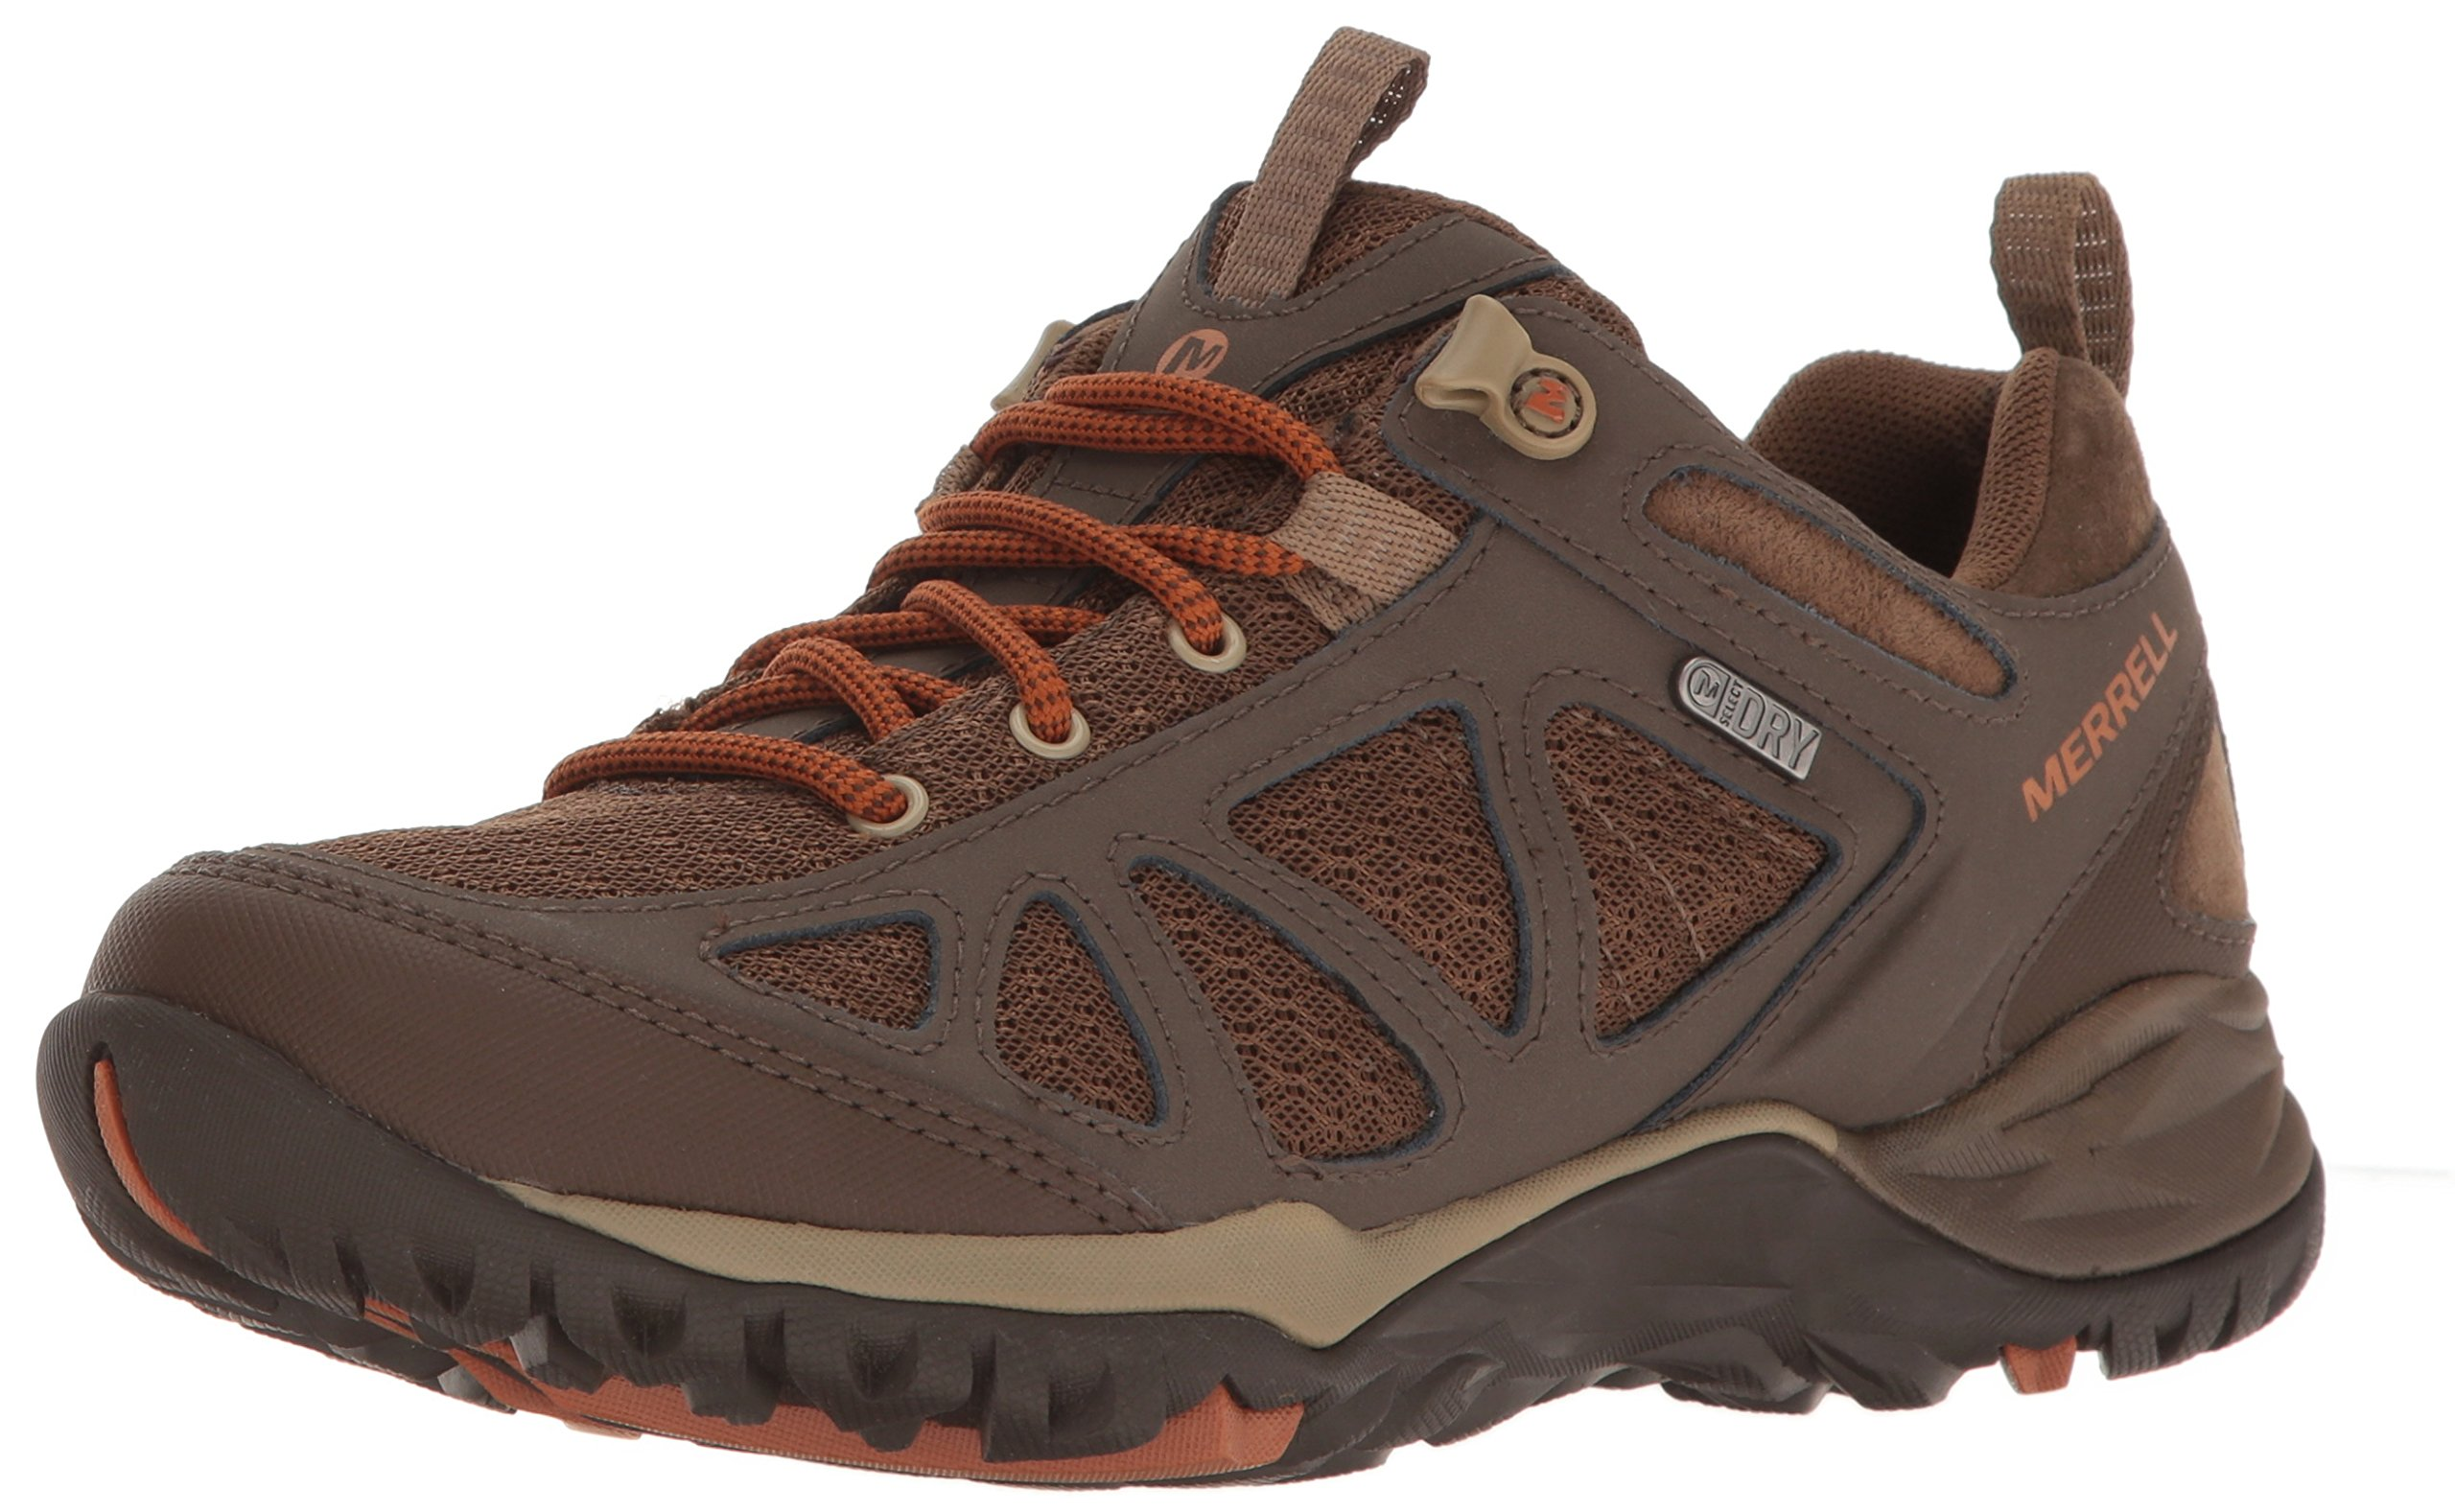 Merrell Women's Siren Sport Q2 Waterproof Hiking Shoe, Slate Black, 5 W US